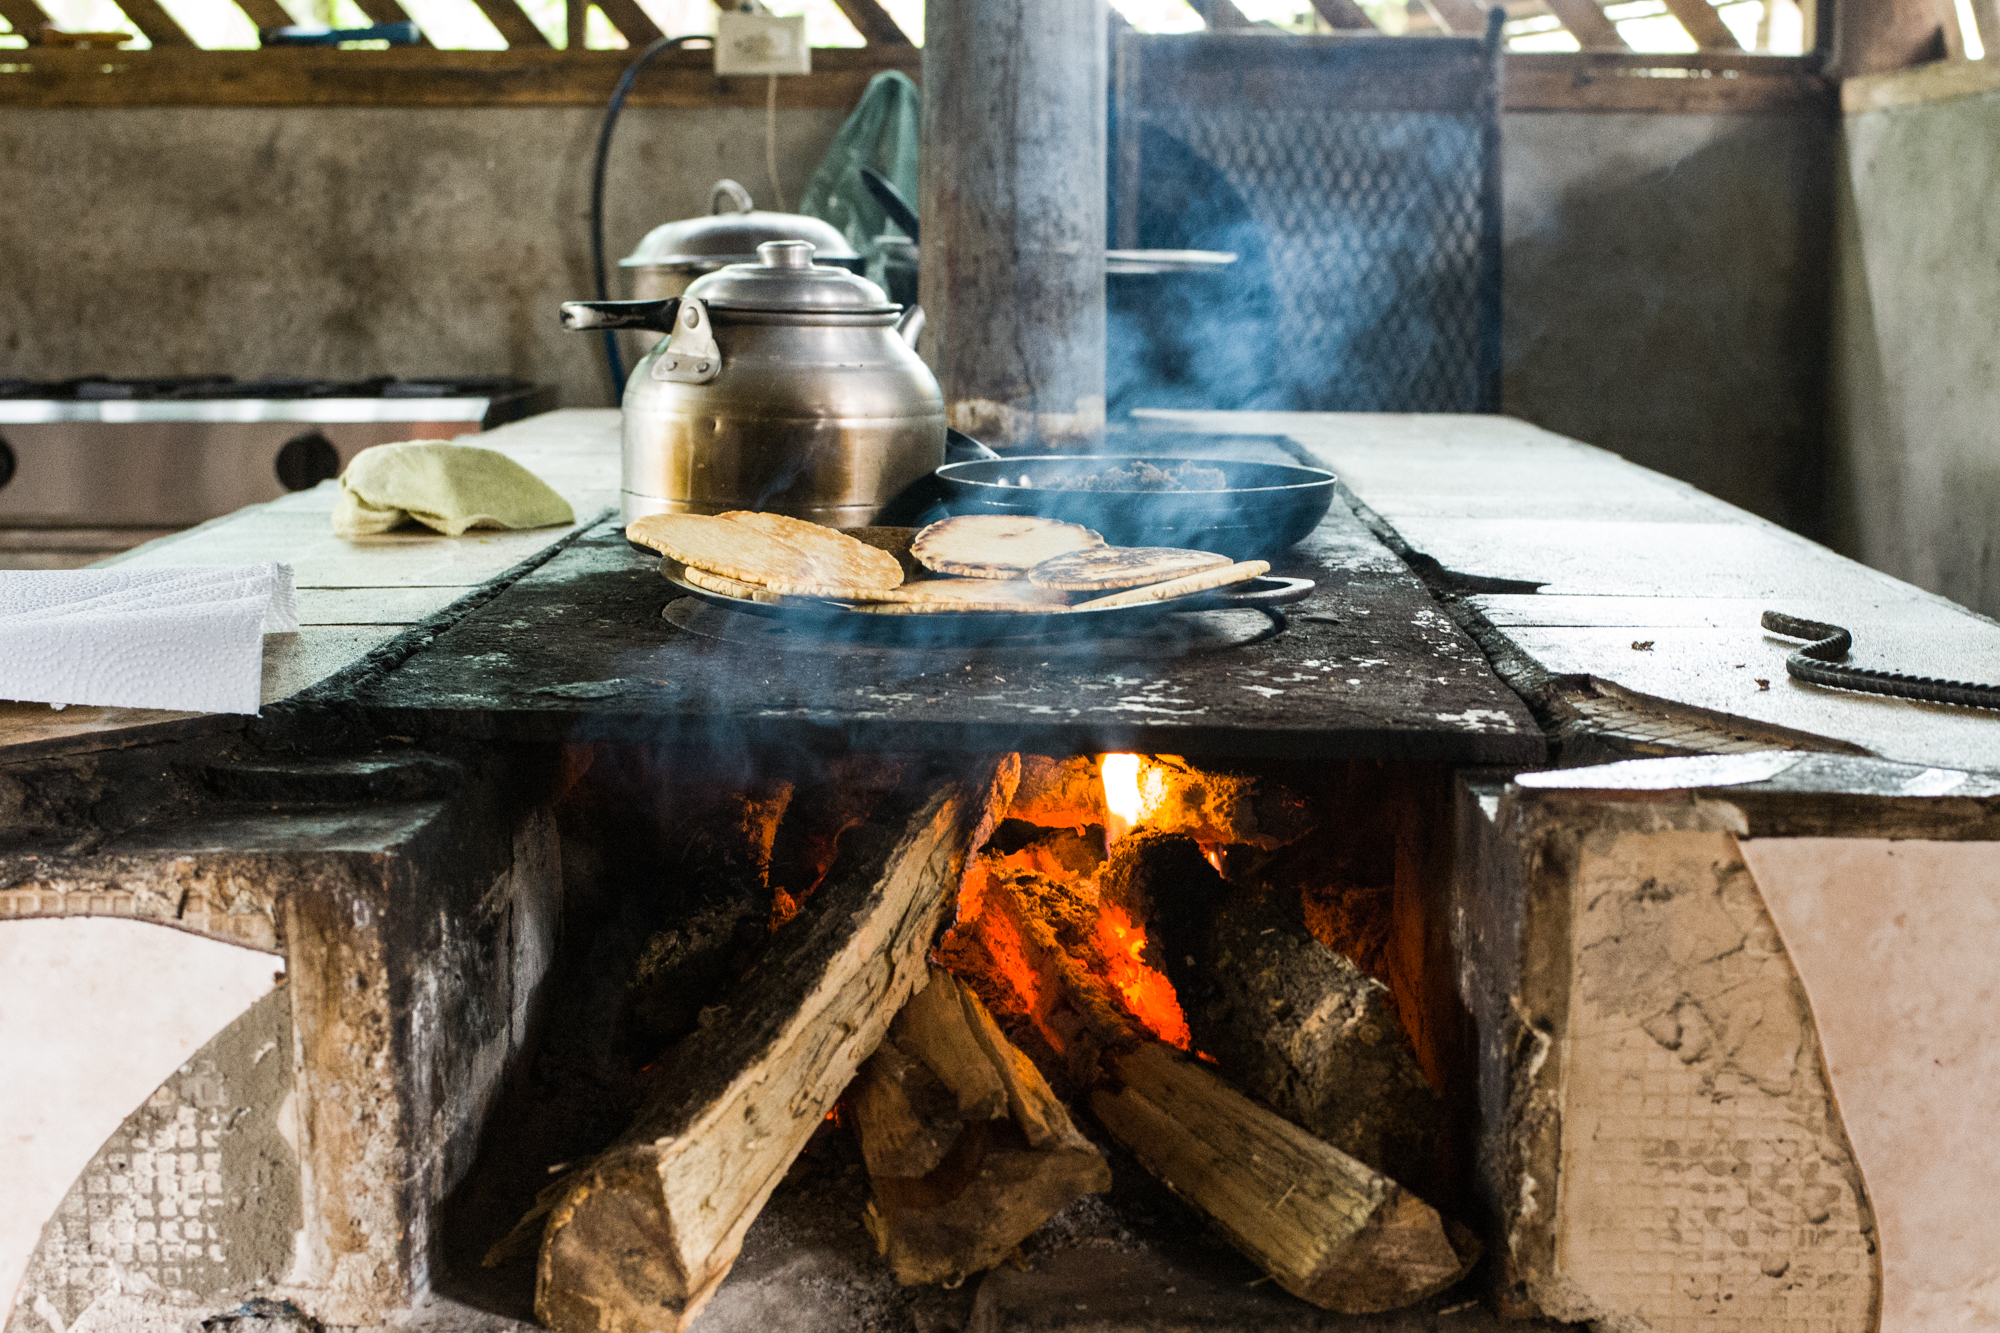 Lunch made on a wood fired stove at Cano Negro